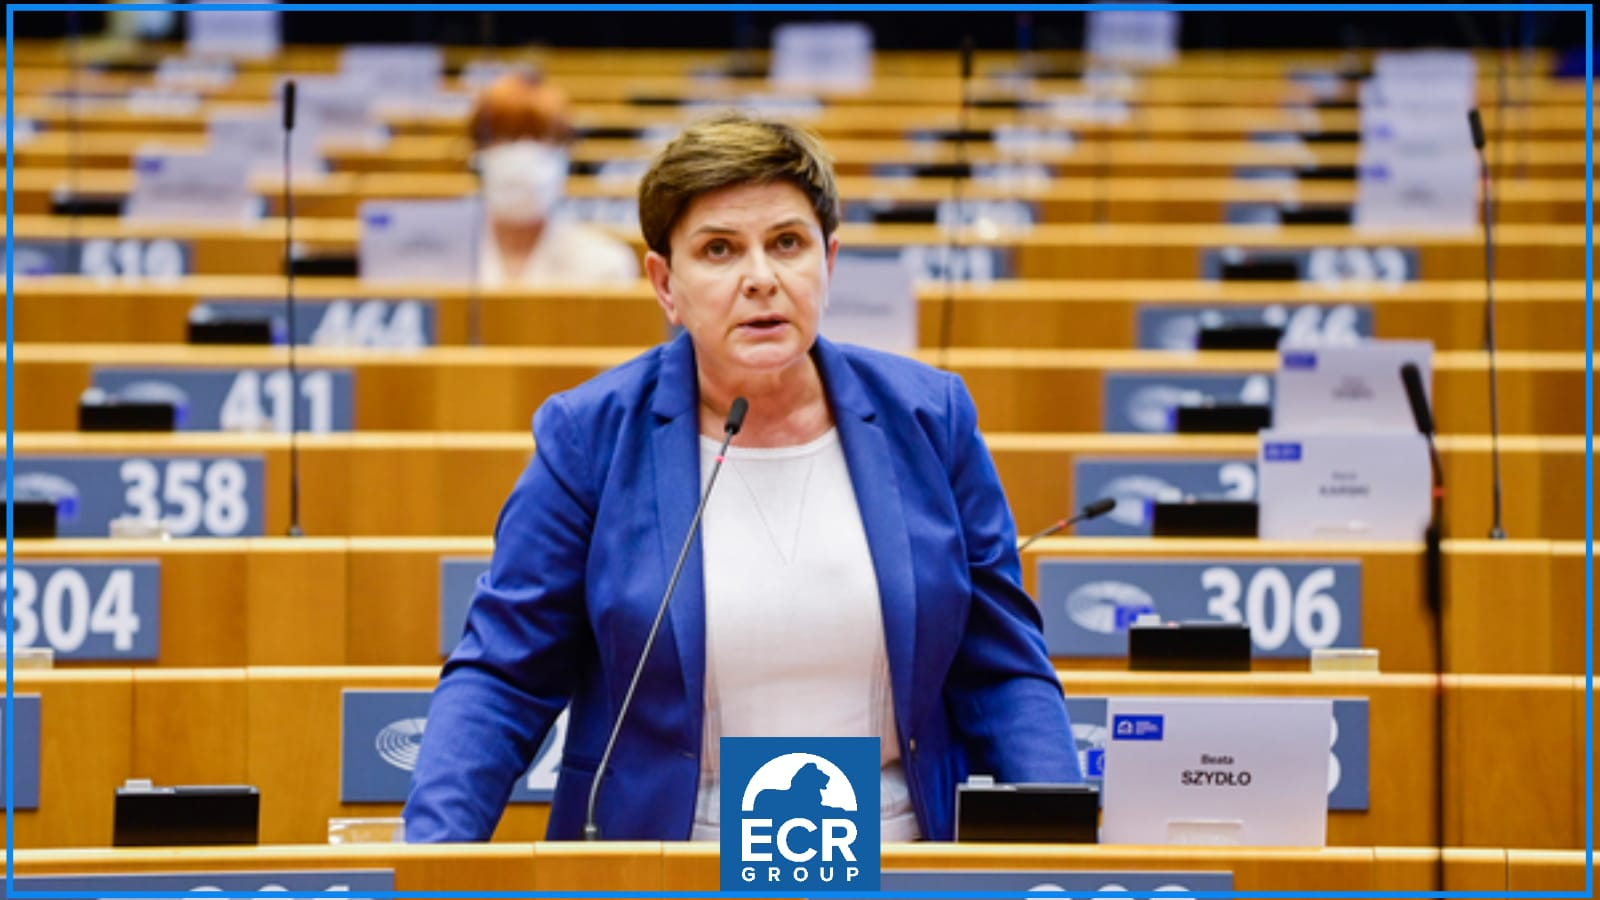 Beata Szydło: The problem of an aging society is one of the biggest challenges of the EU